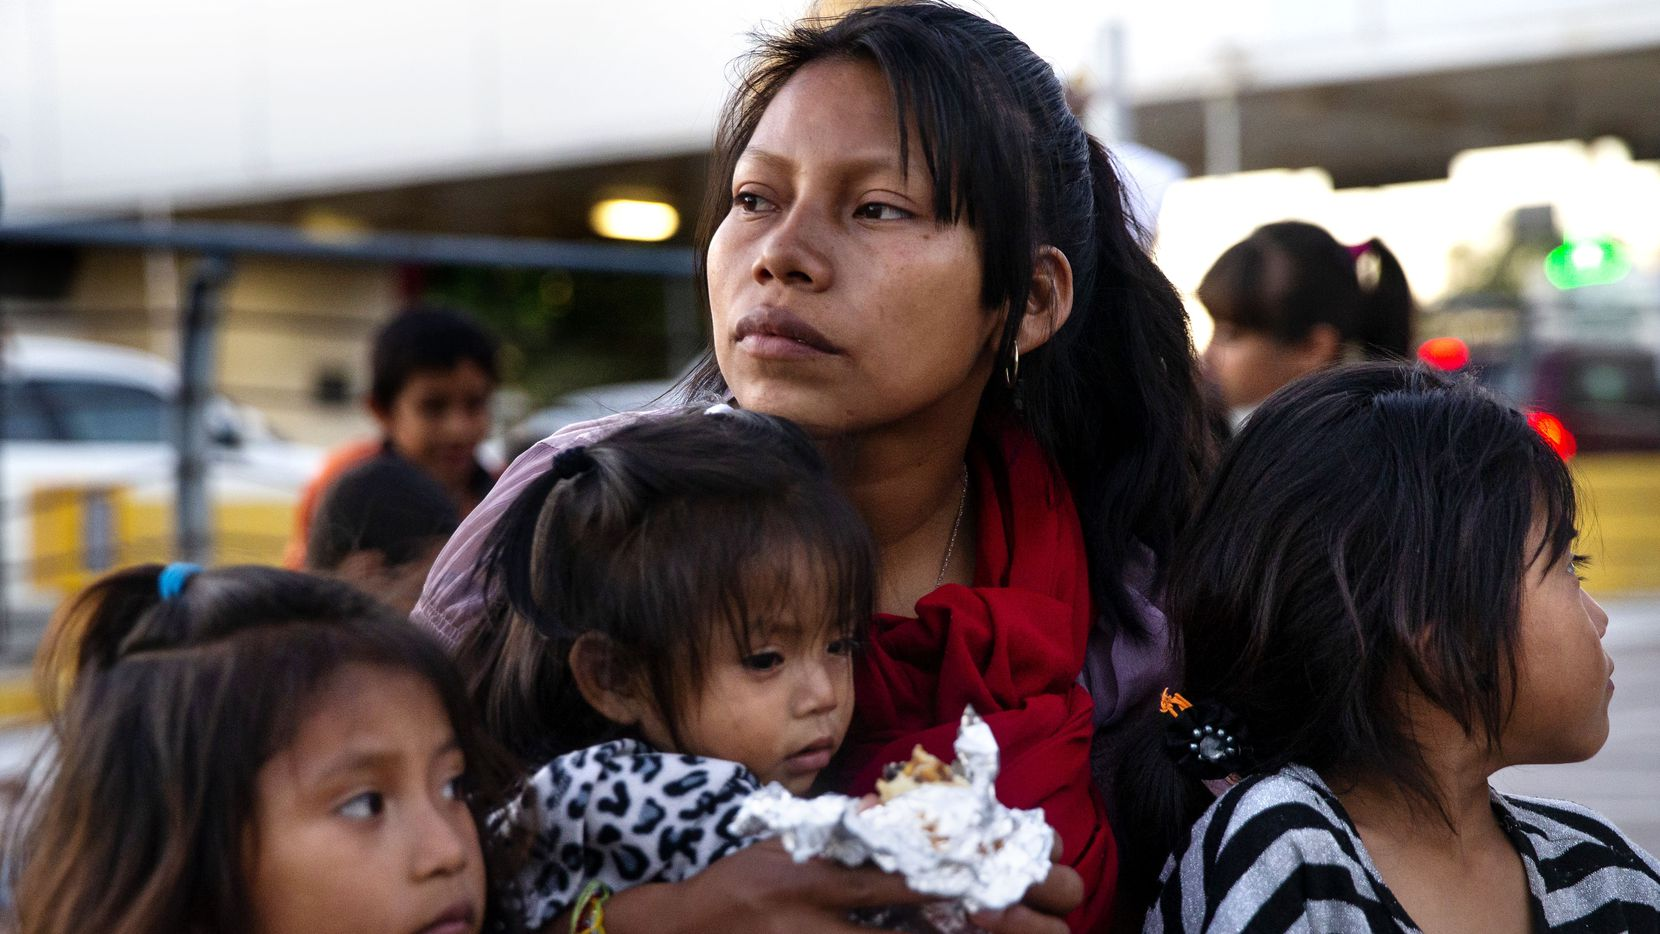 Patricia Giron held daughters Yesenia (left), 6; Wendy (center), 1; and Yocelyn, 6, at the temporary tent camp of asylum-seekers in Matamoros, Mexico, on Dec. 14, 2019. The Giron family, from Chiapas, Mexico, was living in temporary tent shelters under the Migrant Protection Policy, which required asylum-seekers to wait in Mexico while their claims were being processed.